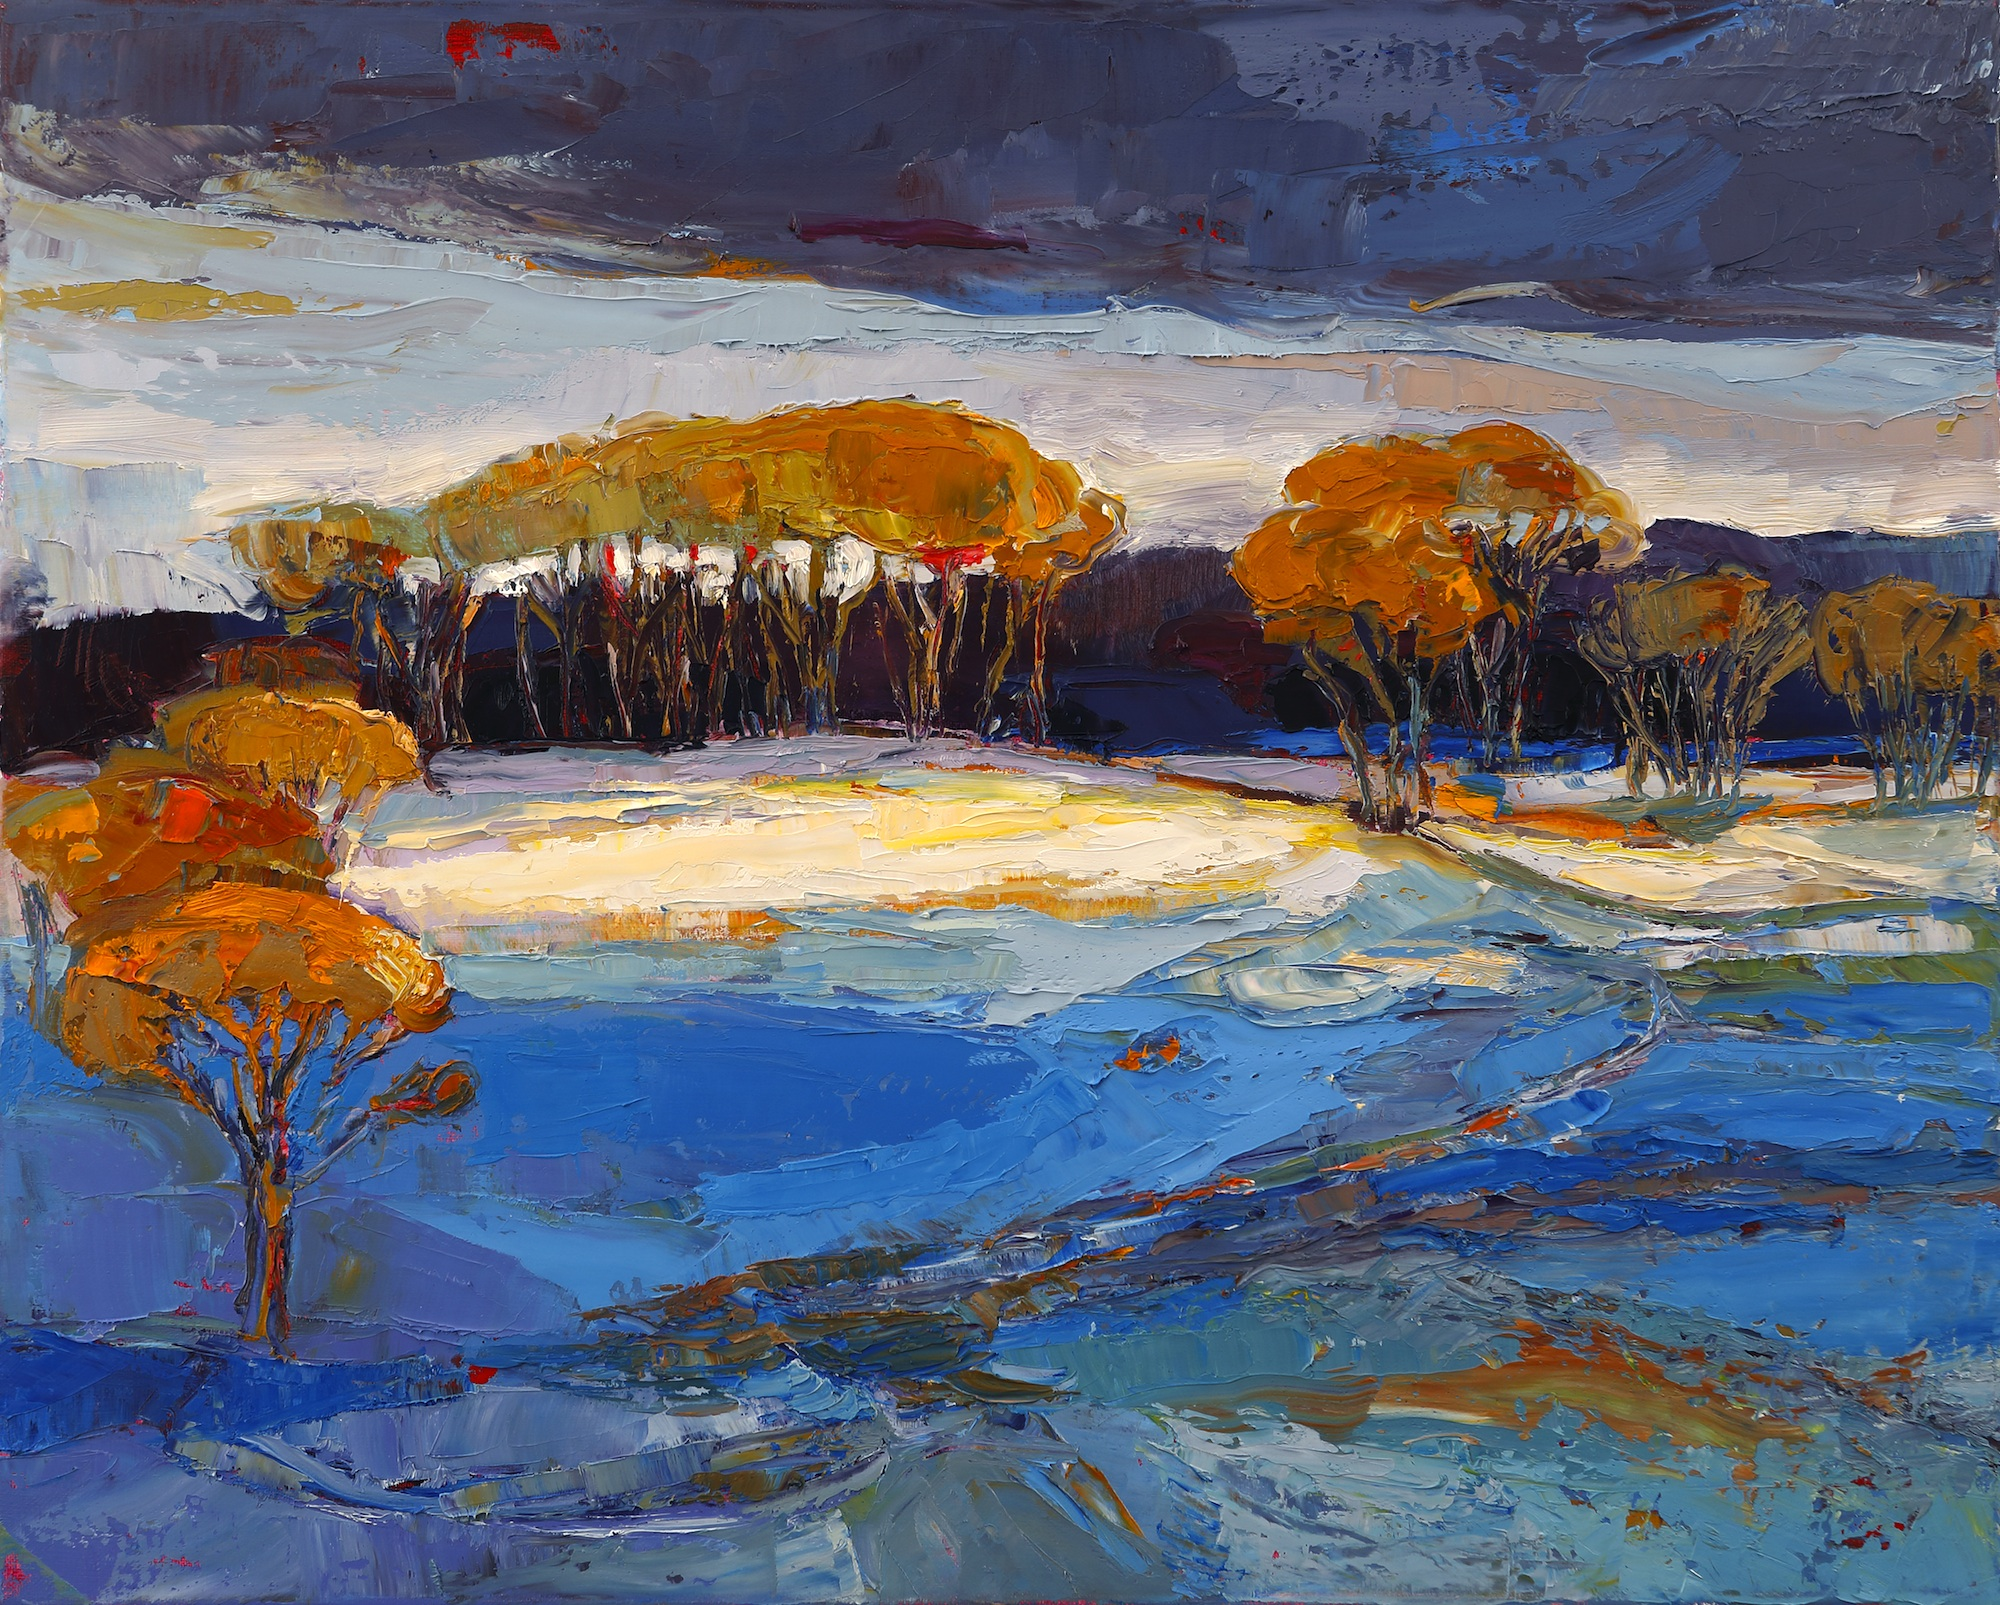 Title: Fair Frost Size: 16 x 20 inches Medium: Oil on Canvas Price: £1750